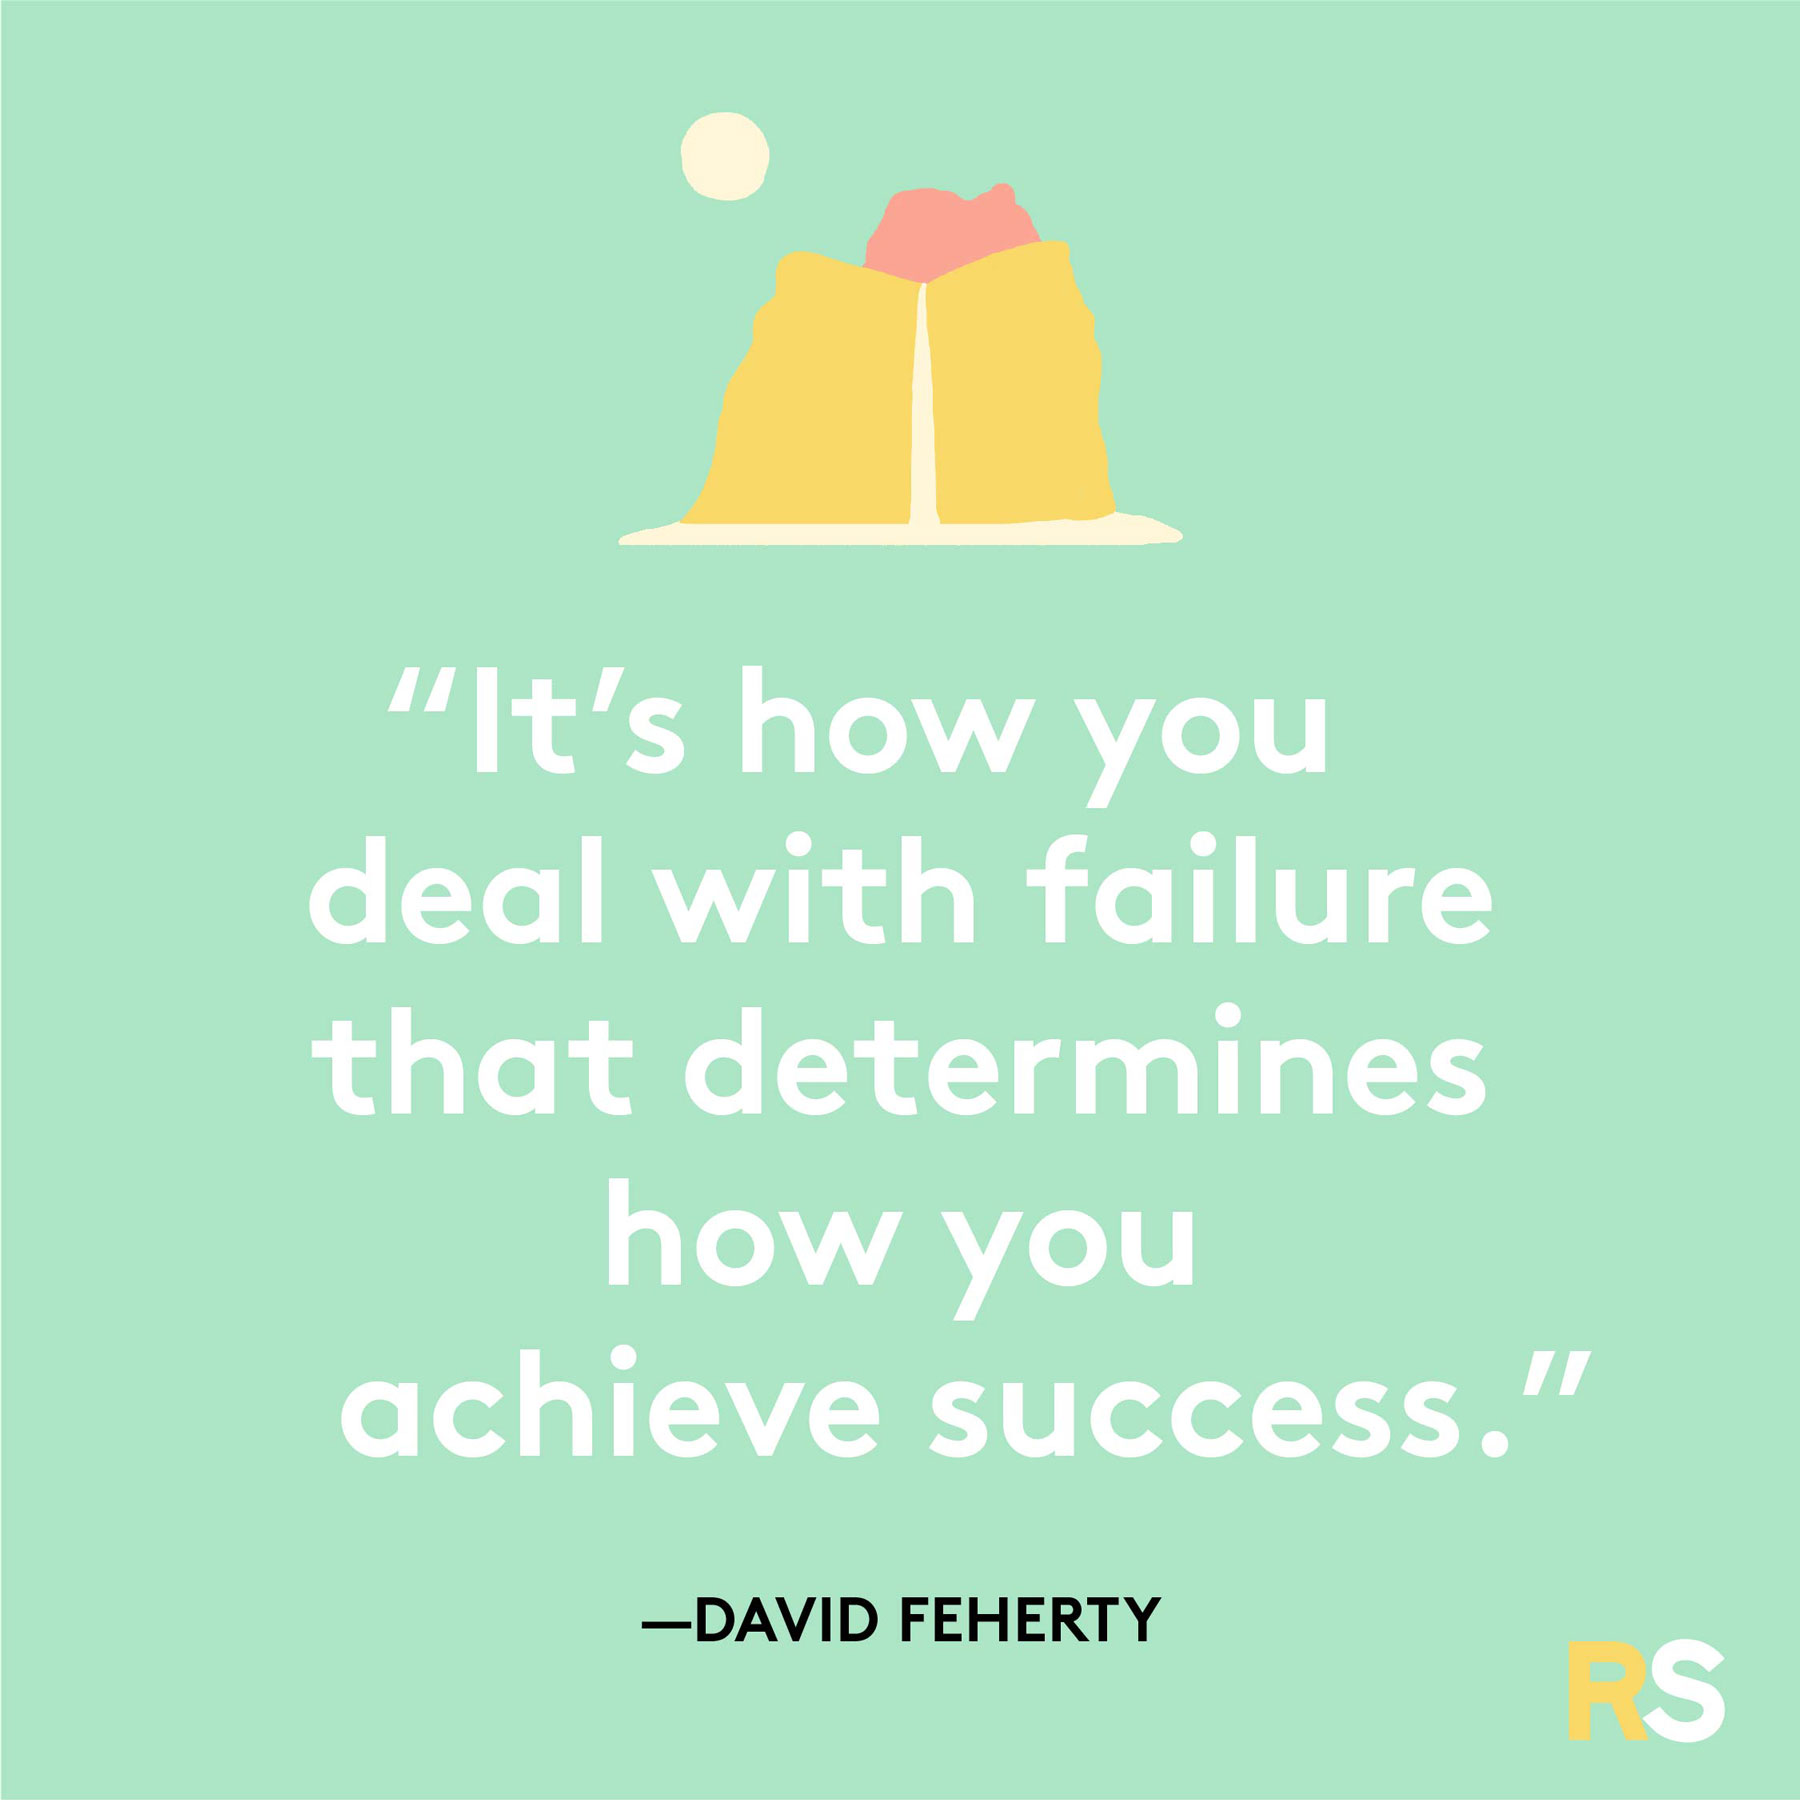 Positive motivating quotes, captions, messages – David Feherty quote